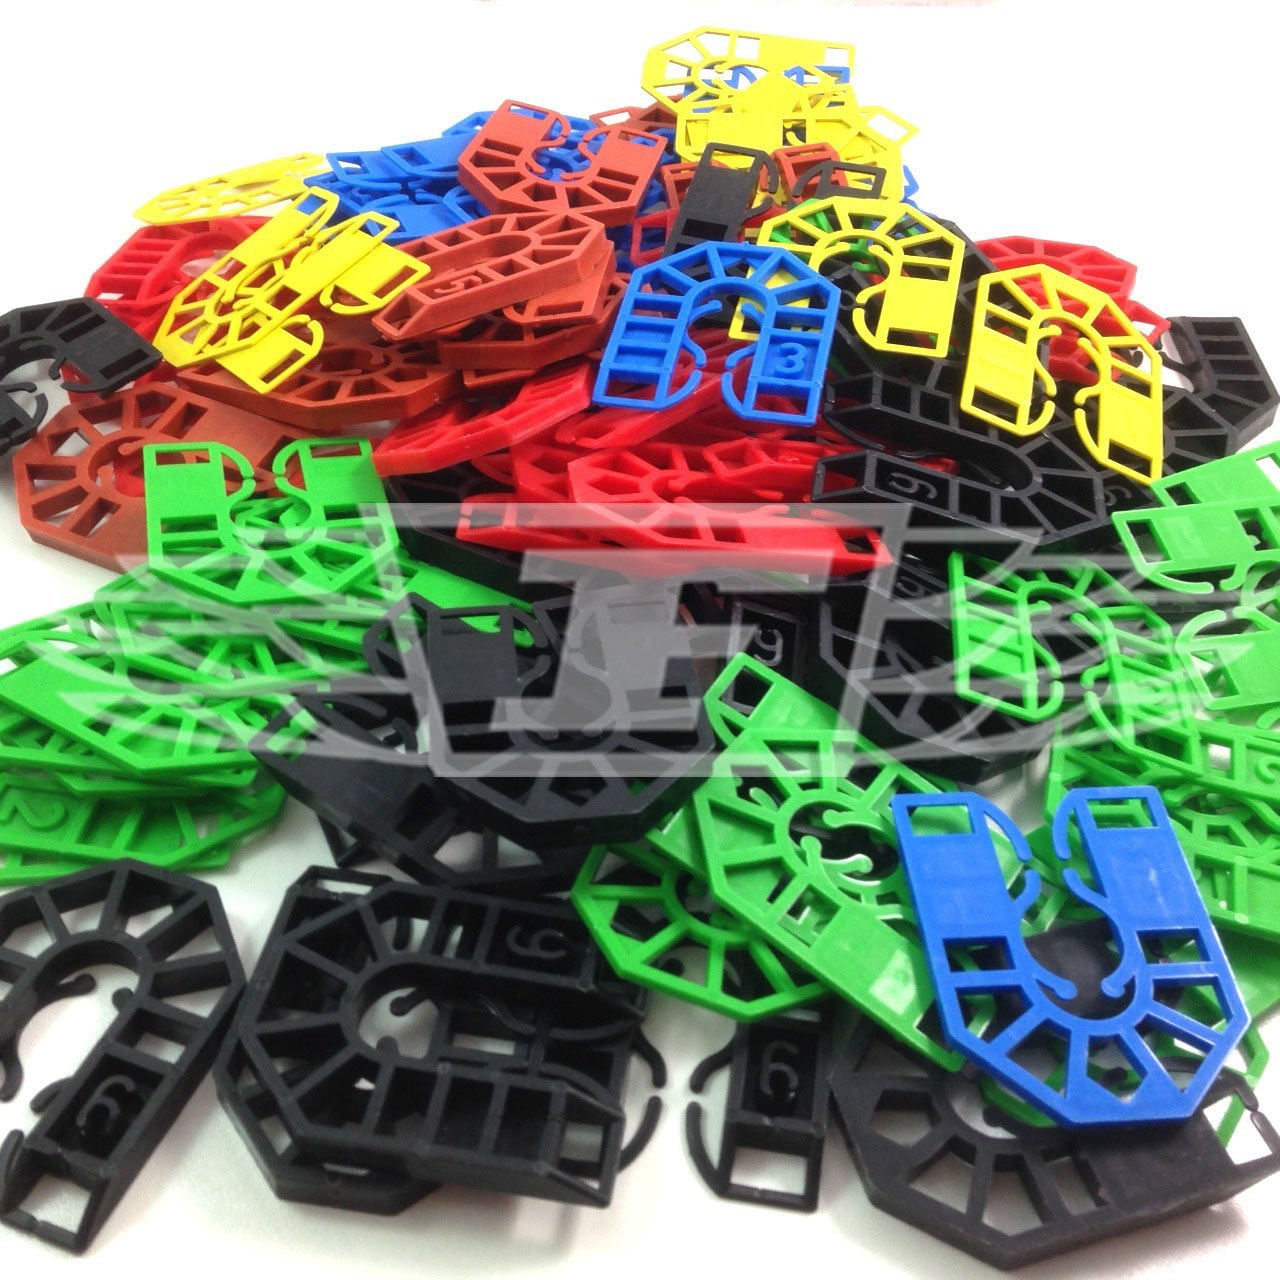 100 PLASTIC HORSESHOE PACKING SHIMS LIGHT & HEAVY WINDOW PACKER SPACER WEDGE - FREE UK DELIVERY Falcon Workshop Supplies LTD